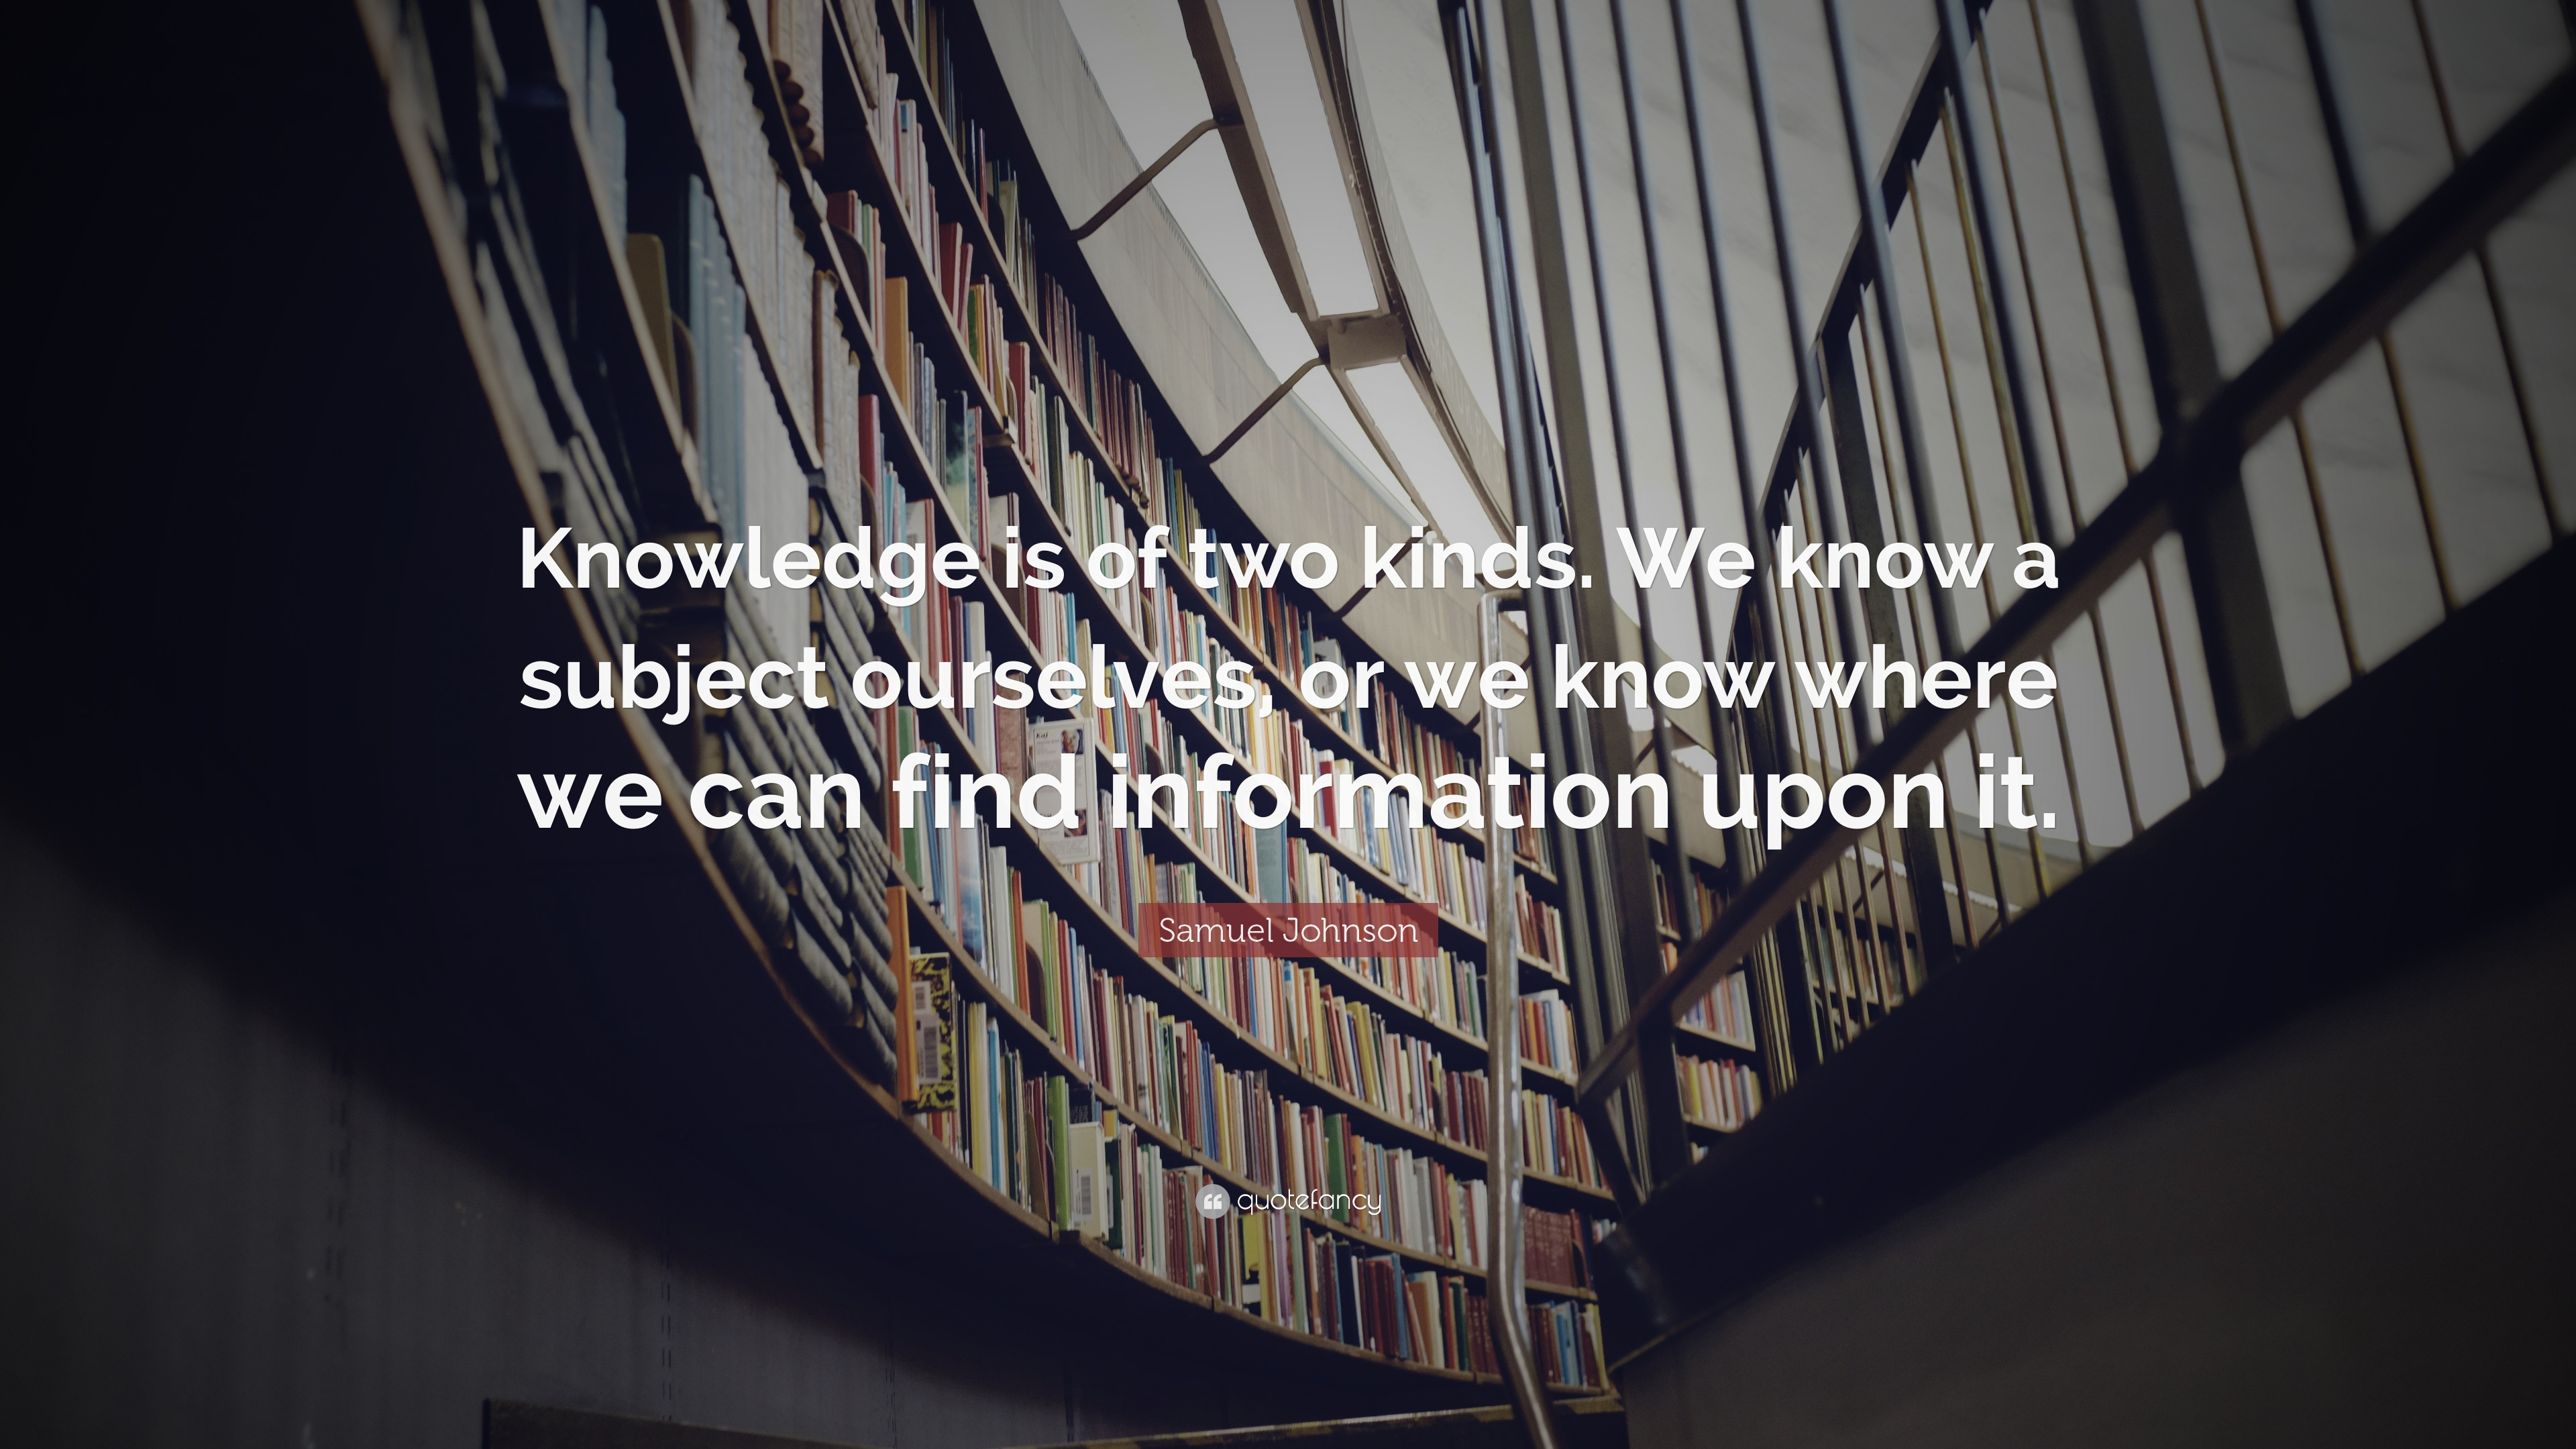 The Two Kinds of Knowledge